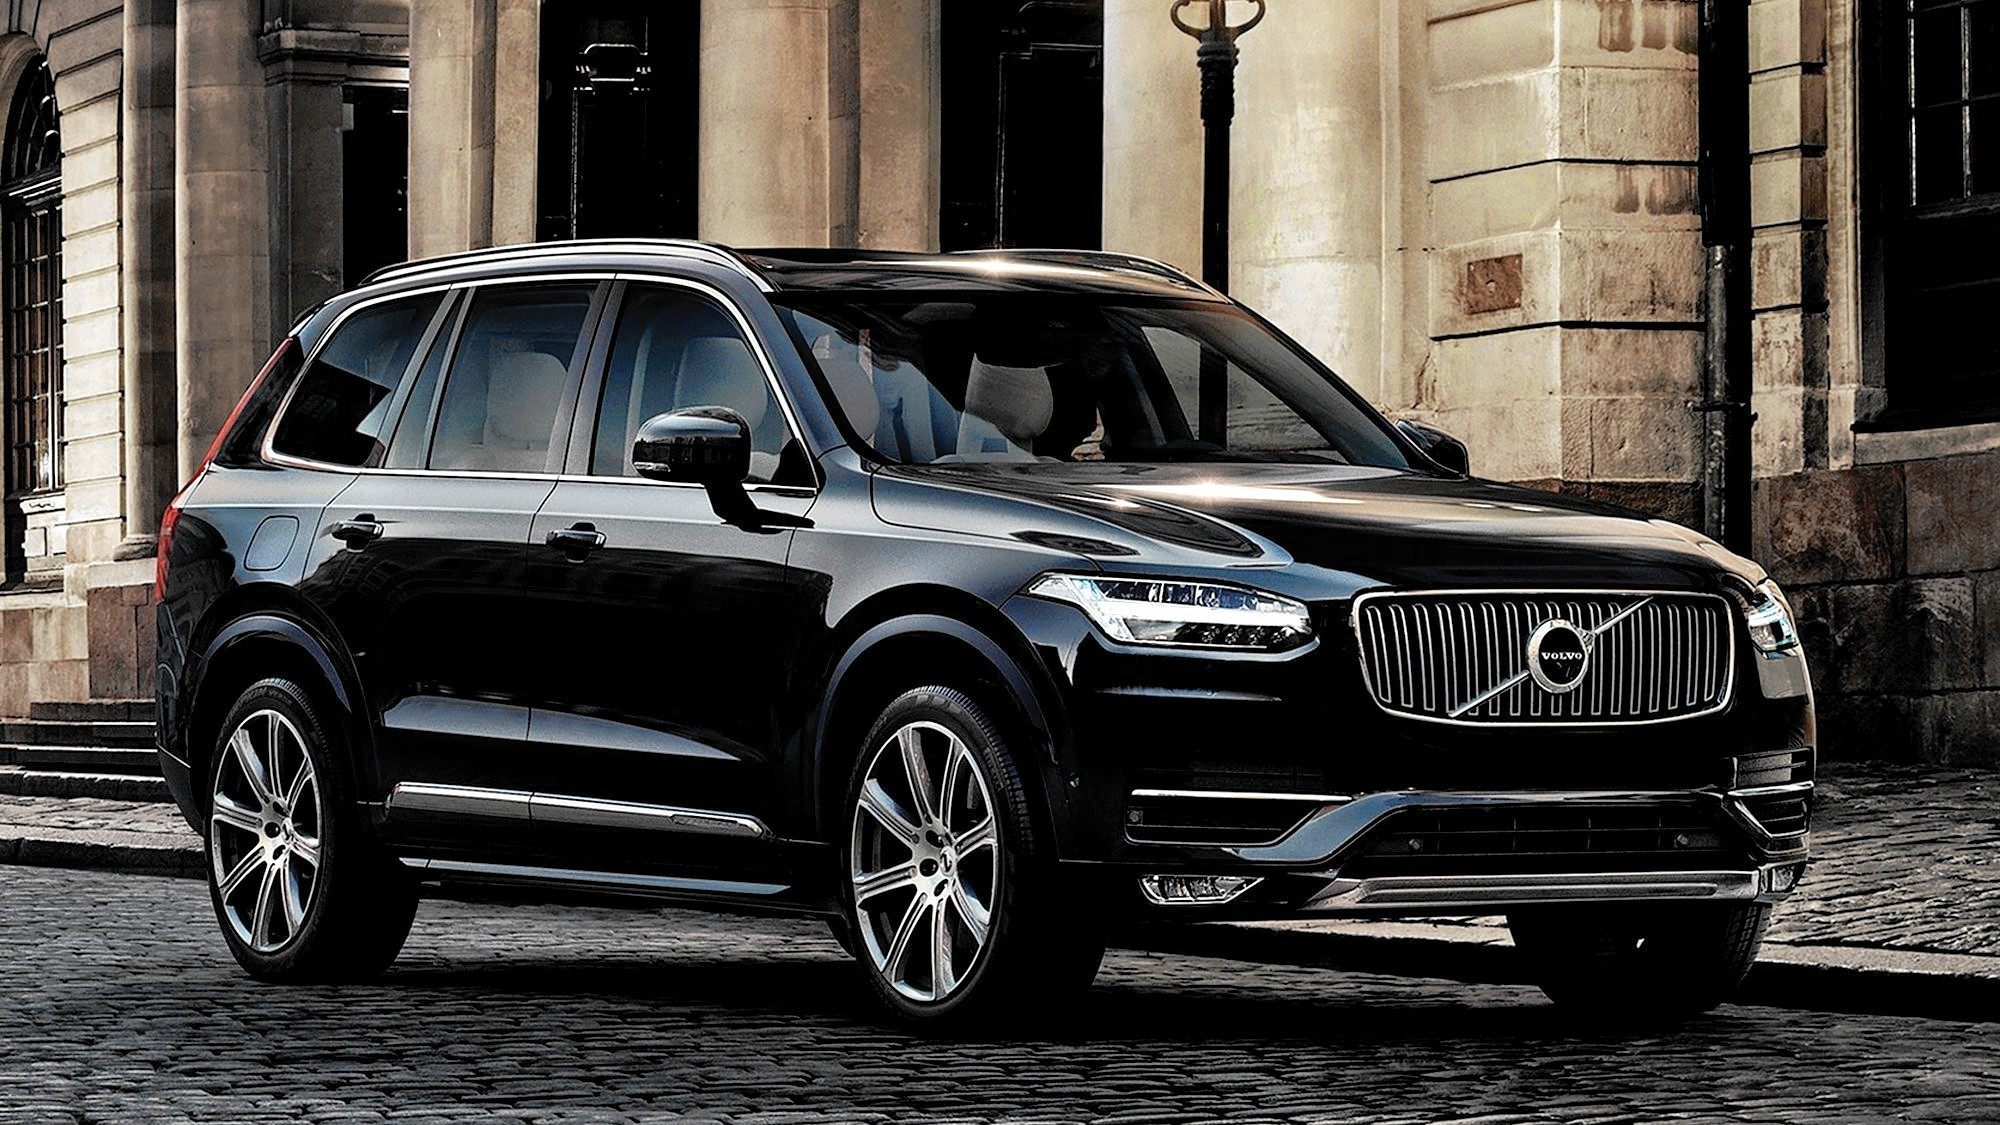 volvo 39 s xc90 suv is really a pricey swedish minivan la times. Black Bedroom Furniture Sets. Home Design Ideas